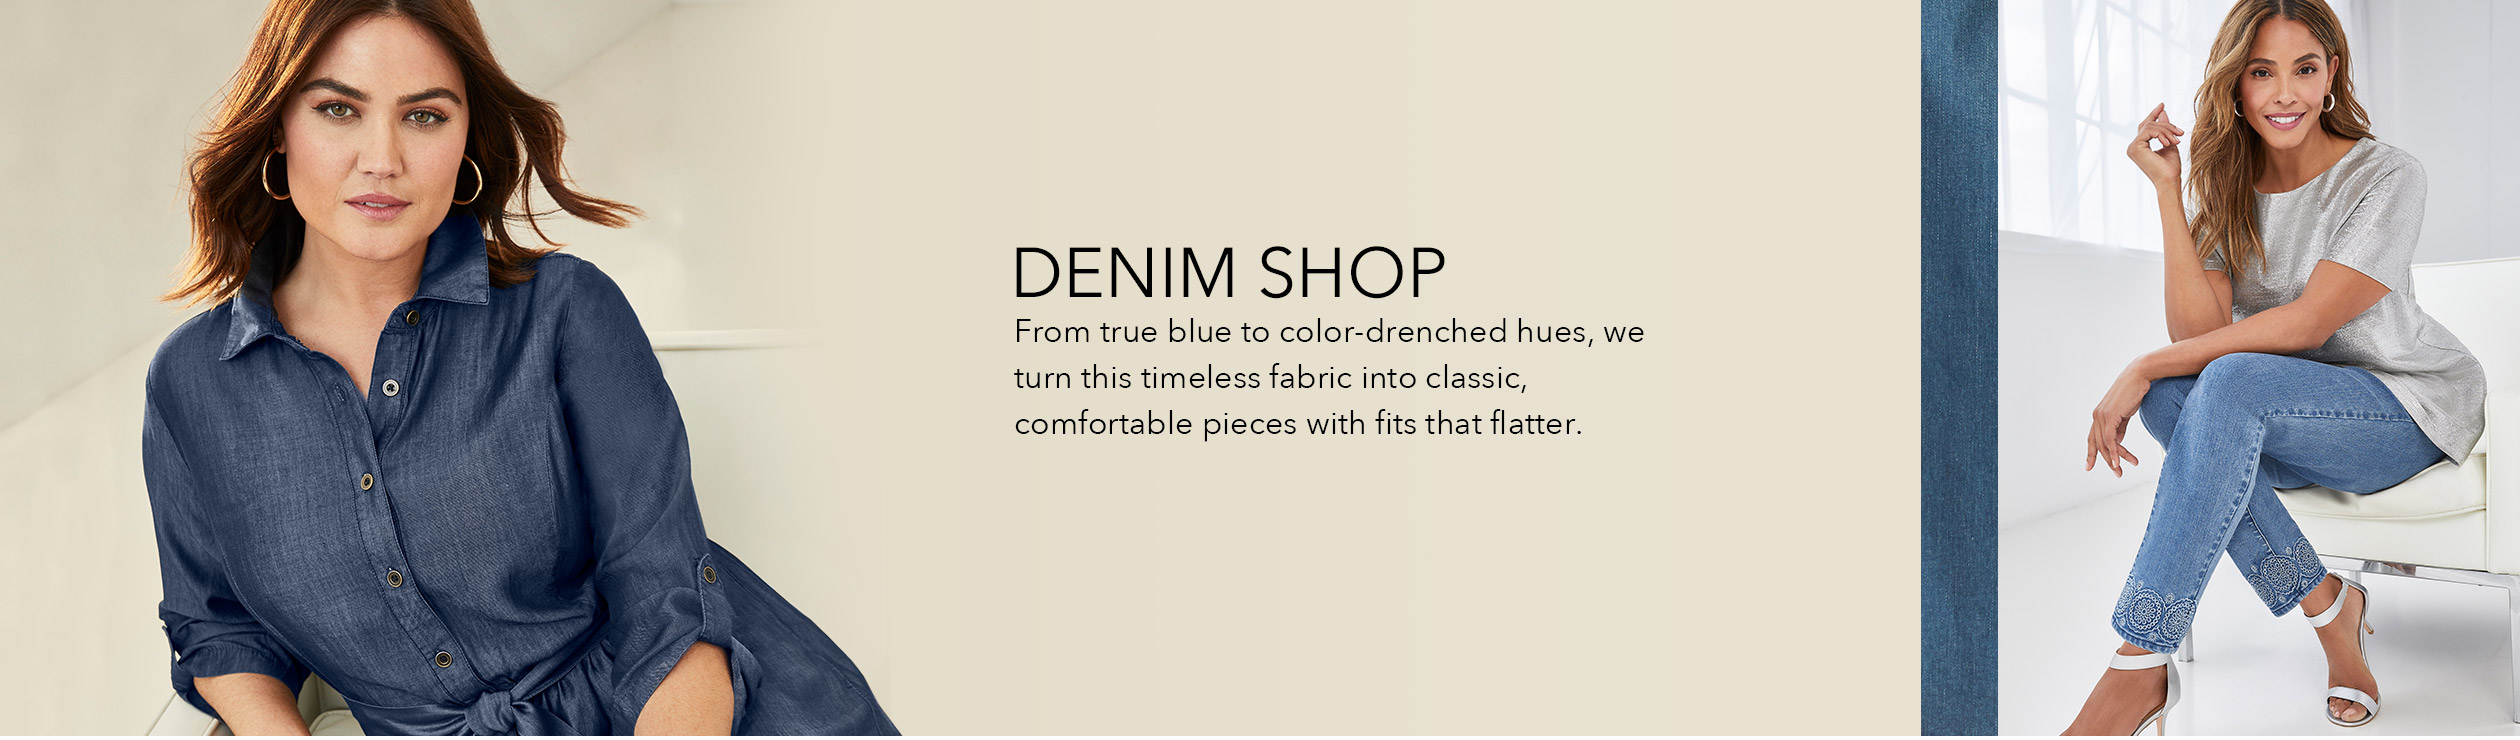 Denim Shop | From true blue to color-drenched hues, 